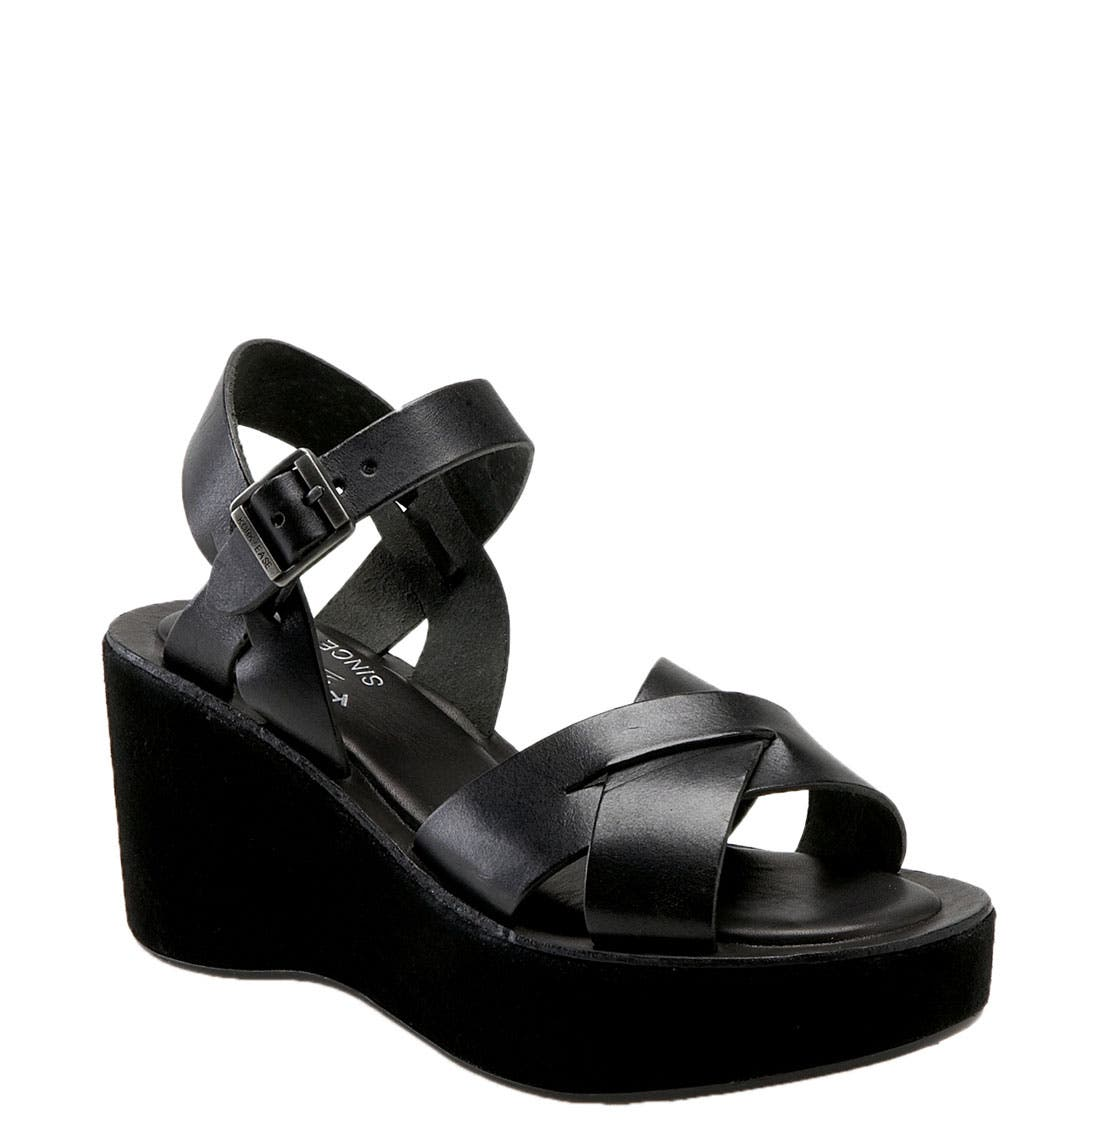 Main Image - Kork-Ease 'Ava' Wedge Sandal